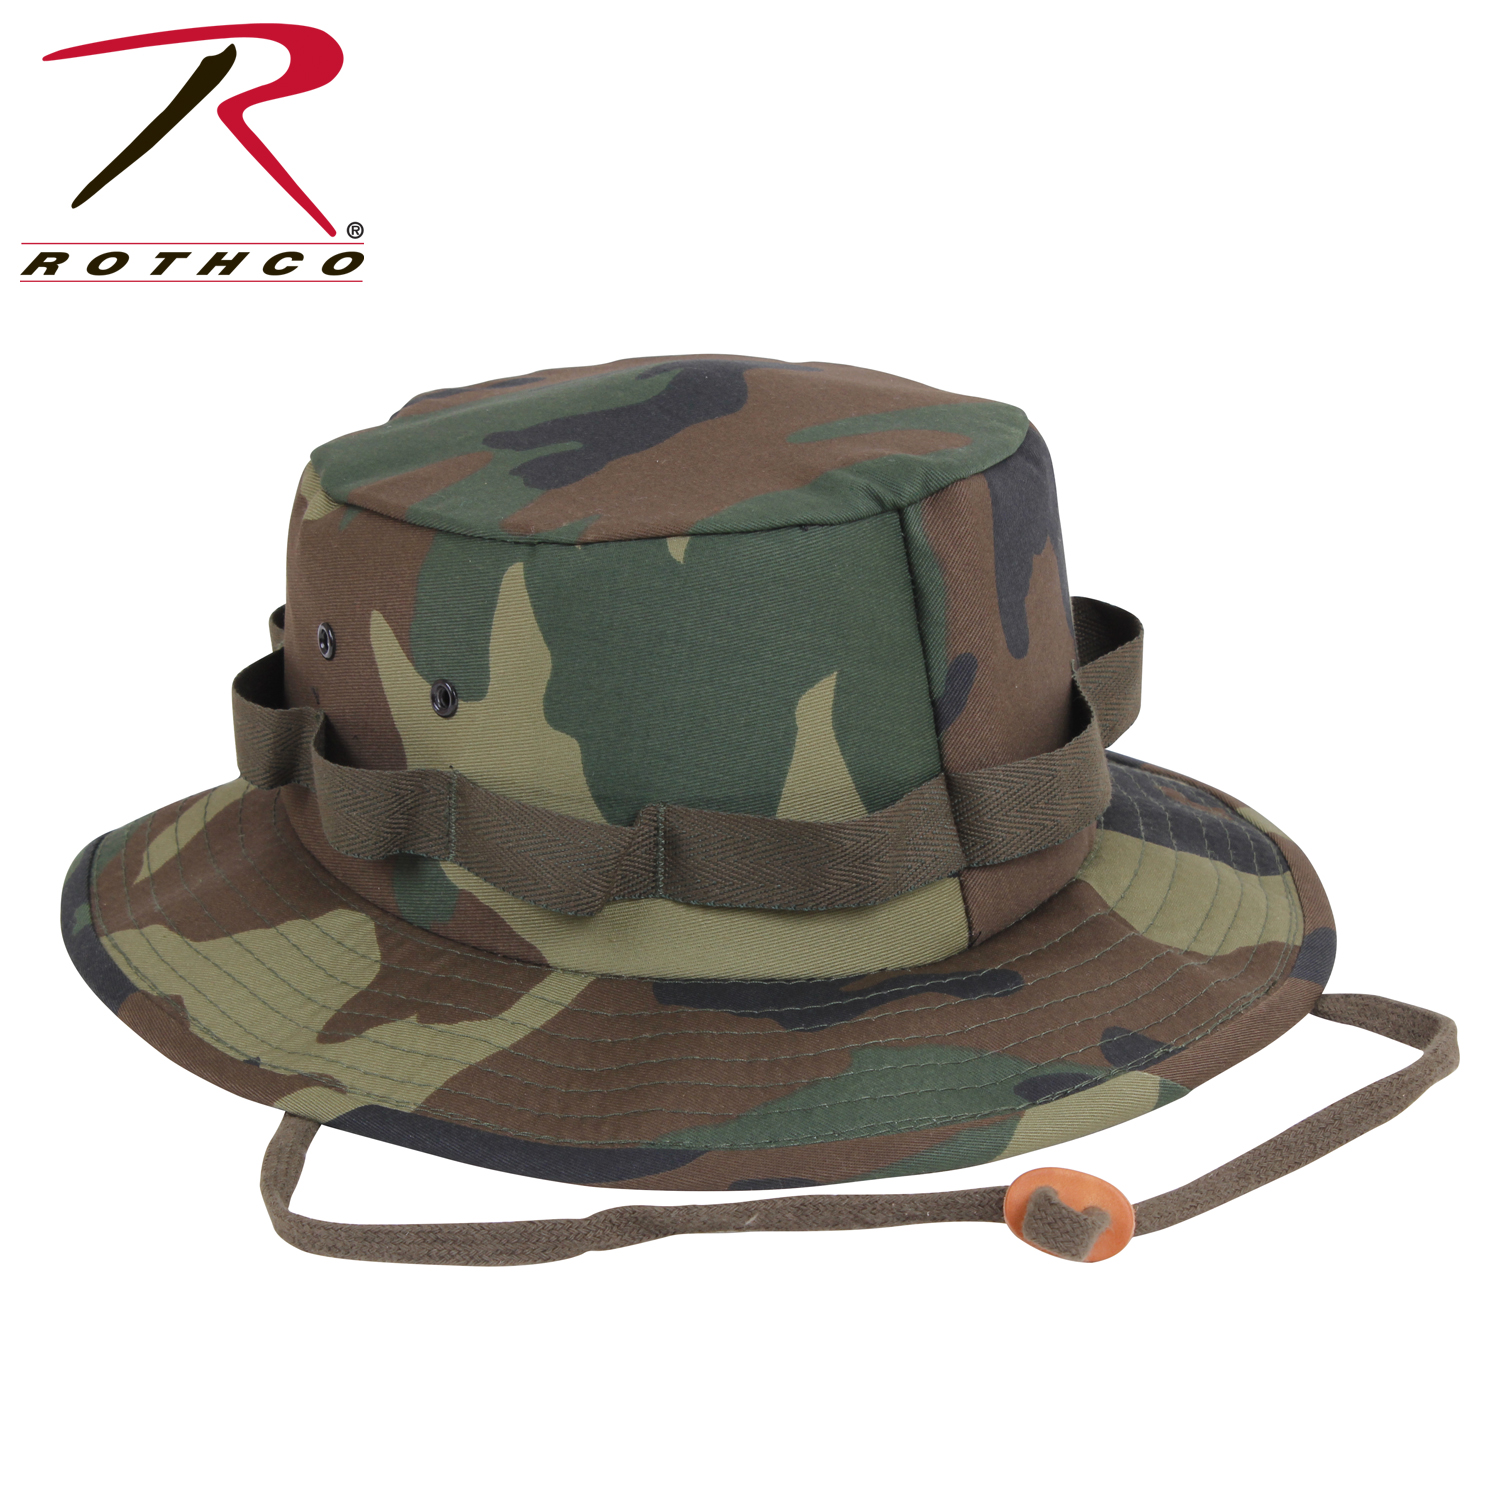 9ae54ac38dc12 Rothco Camo Jungle Hat